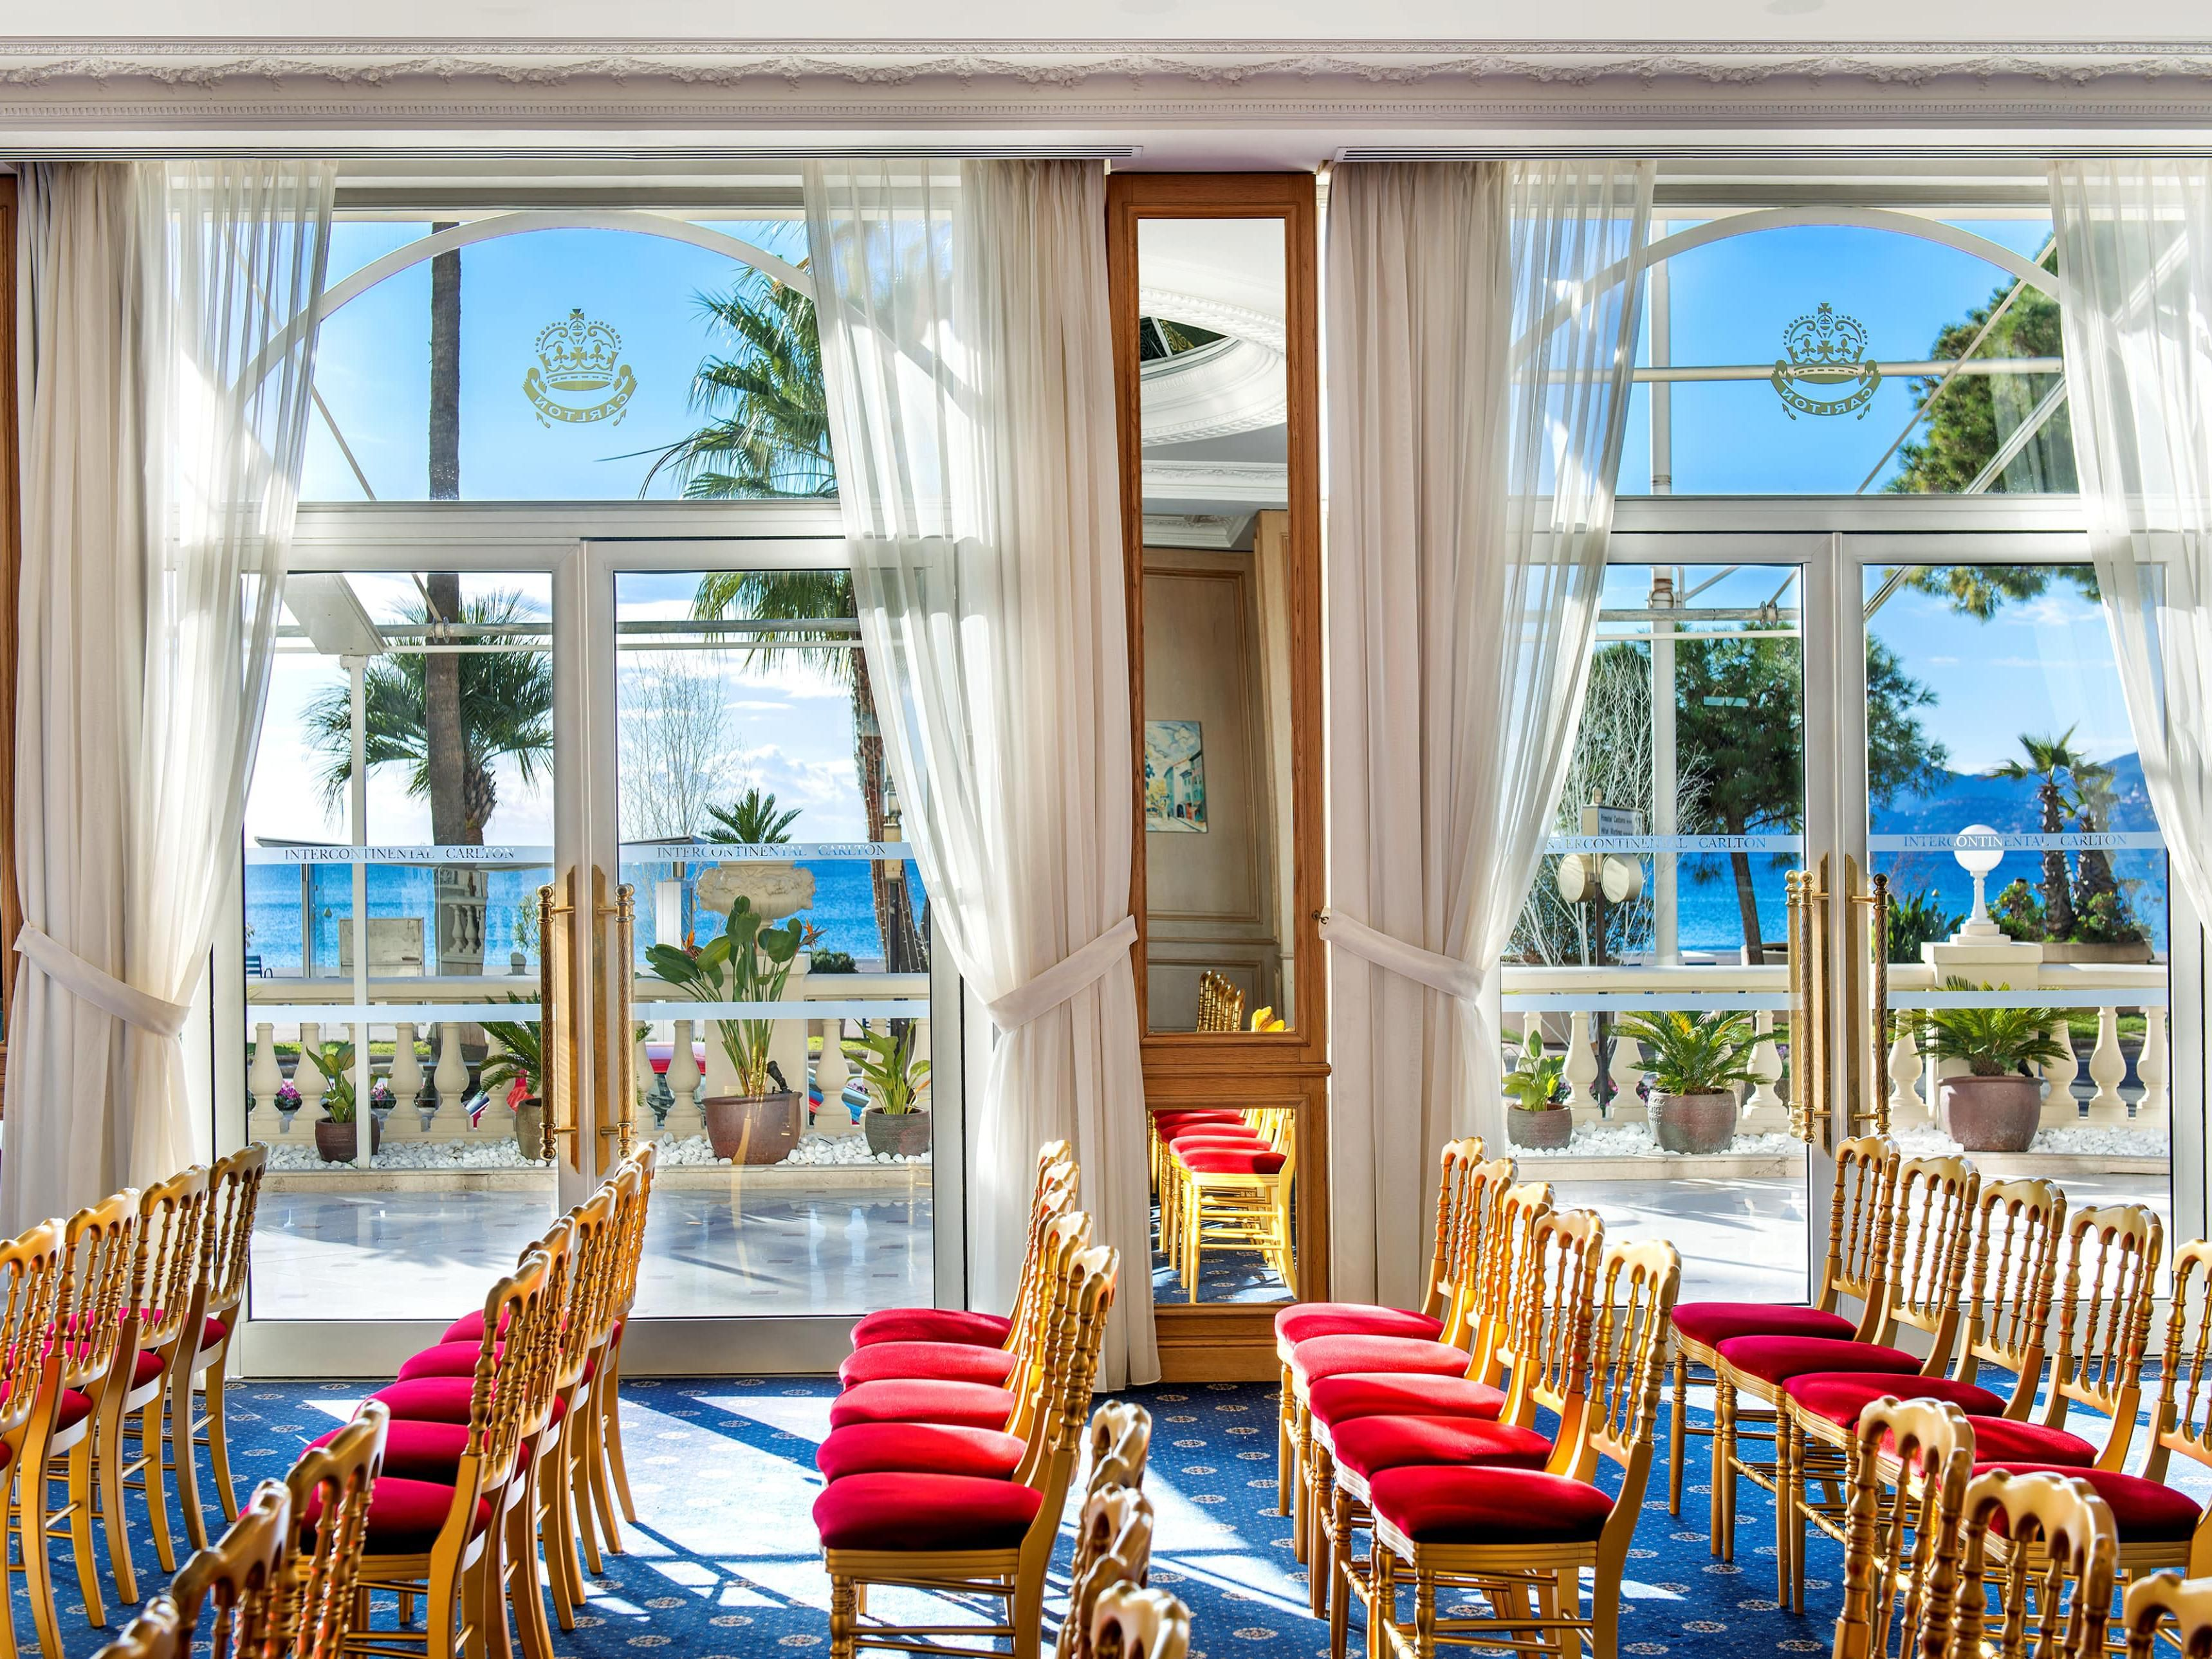 Renovation Cuisine Cannes intercontinental carlton cannes | cannes luxury beach hotel